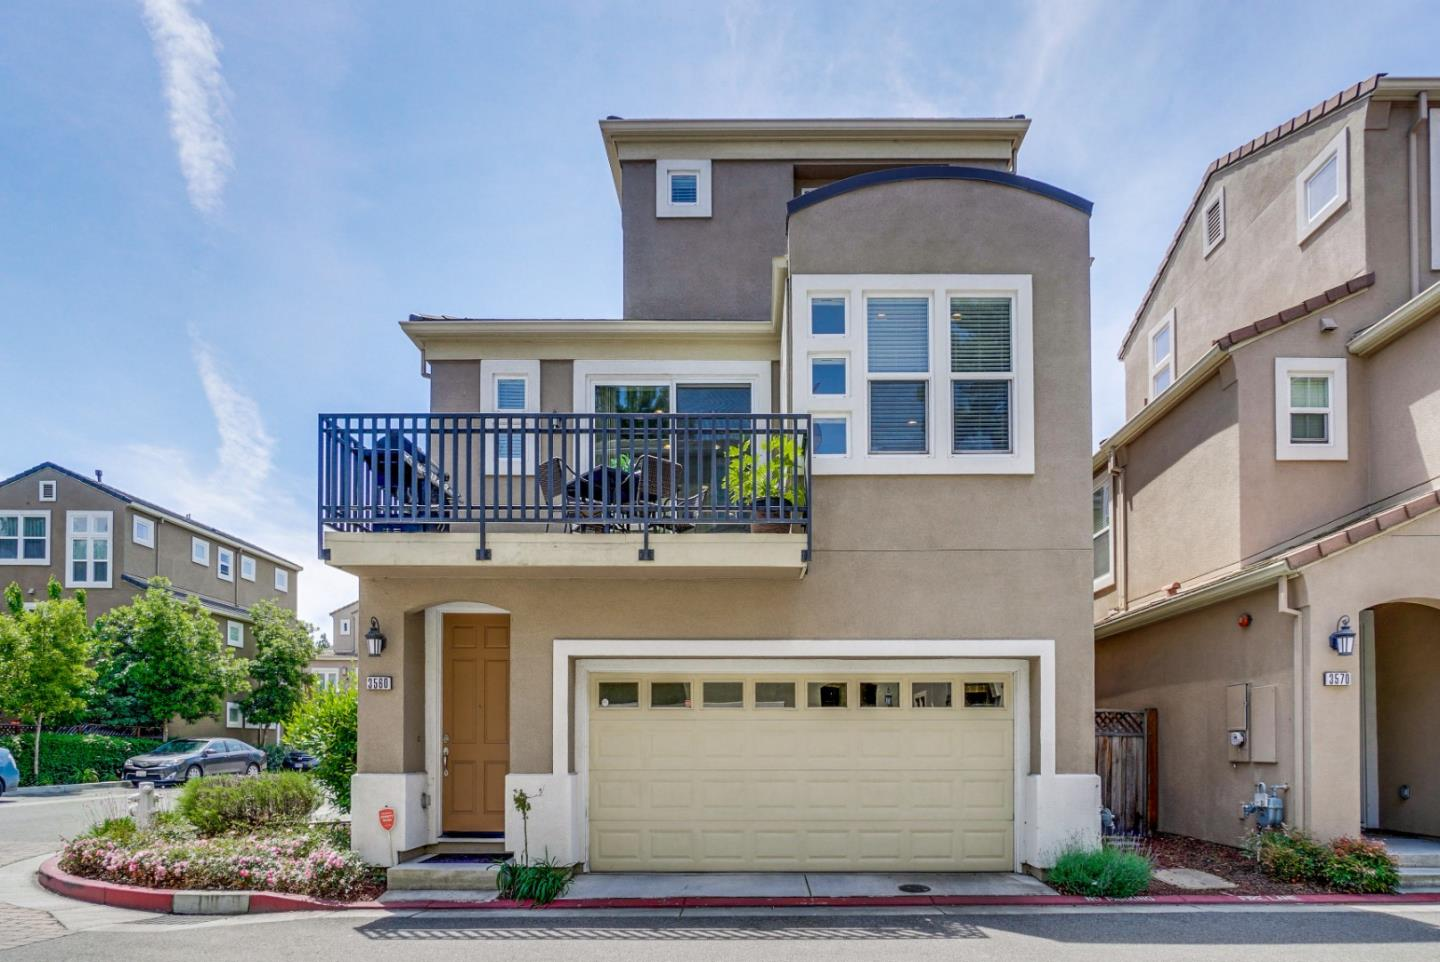 Detail Gallery Image 1 of 41 For 3560 Druffel Pl, Santa Clara, CA, 95051 - 3 Beds | 3/1 Baths